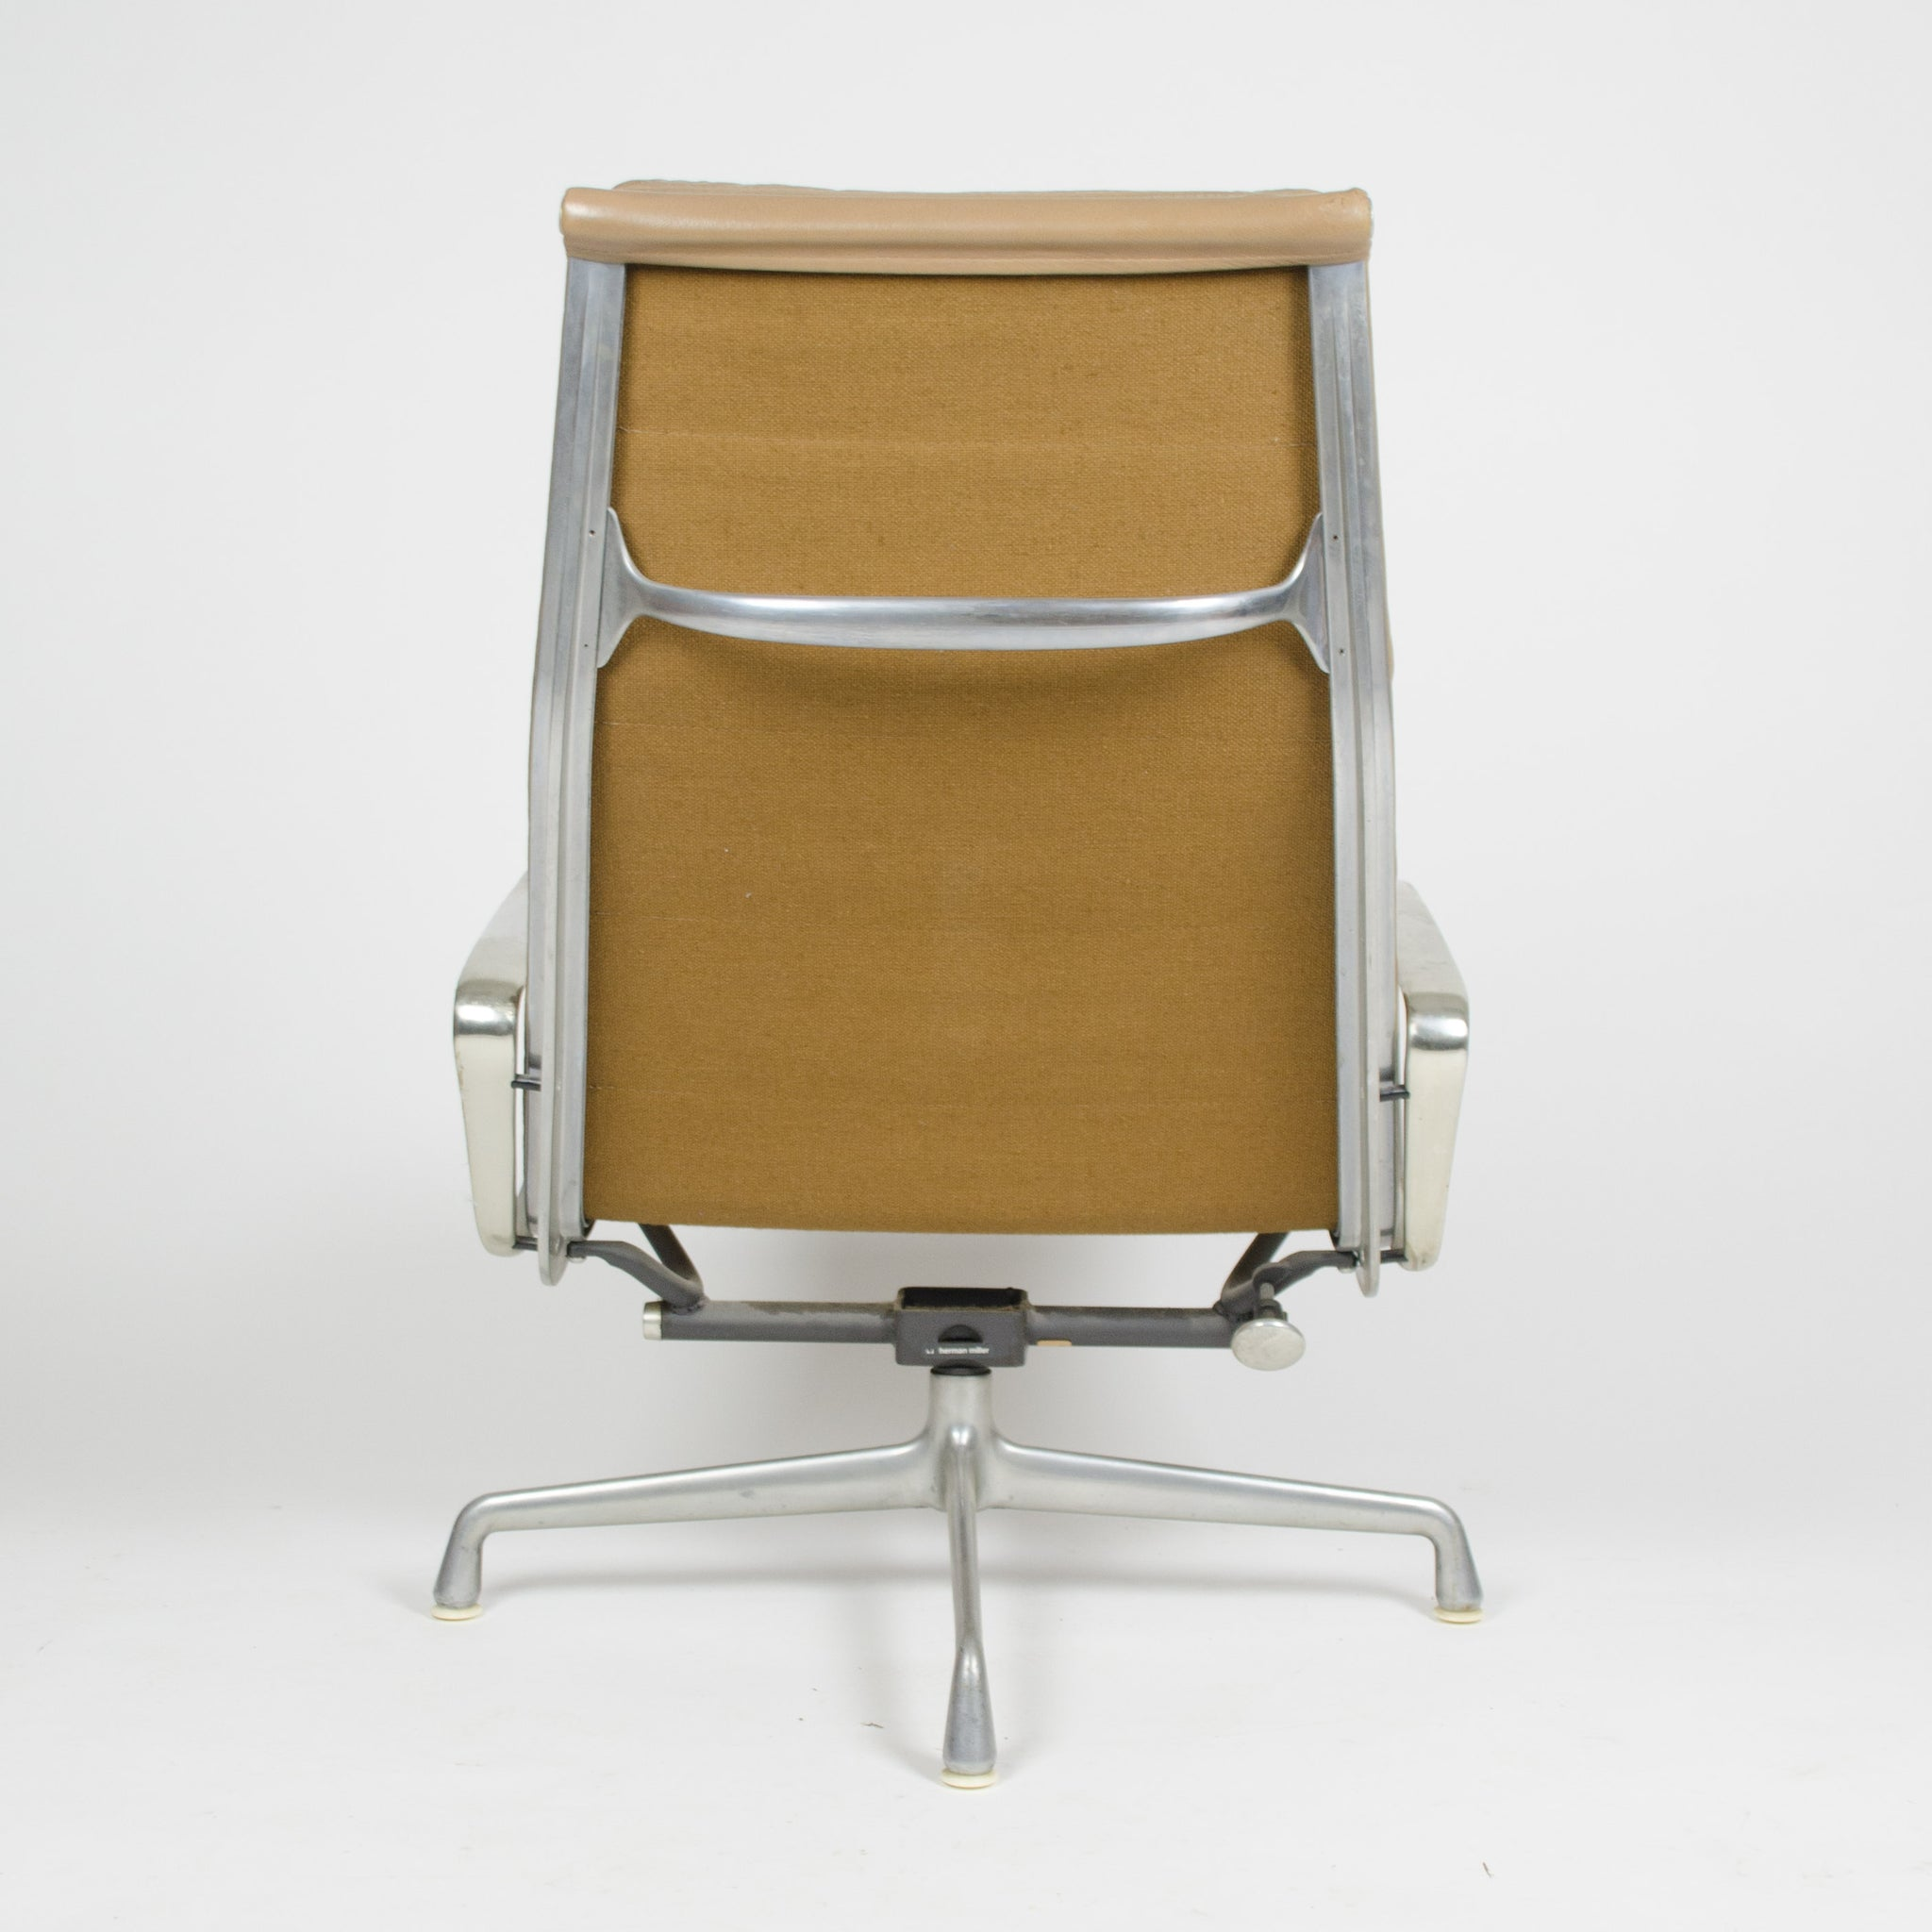 SOLD Herman Miller Eames Soft Pad Lounge Chair with Ottoman Tan 1970's